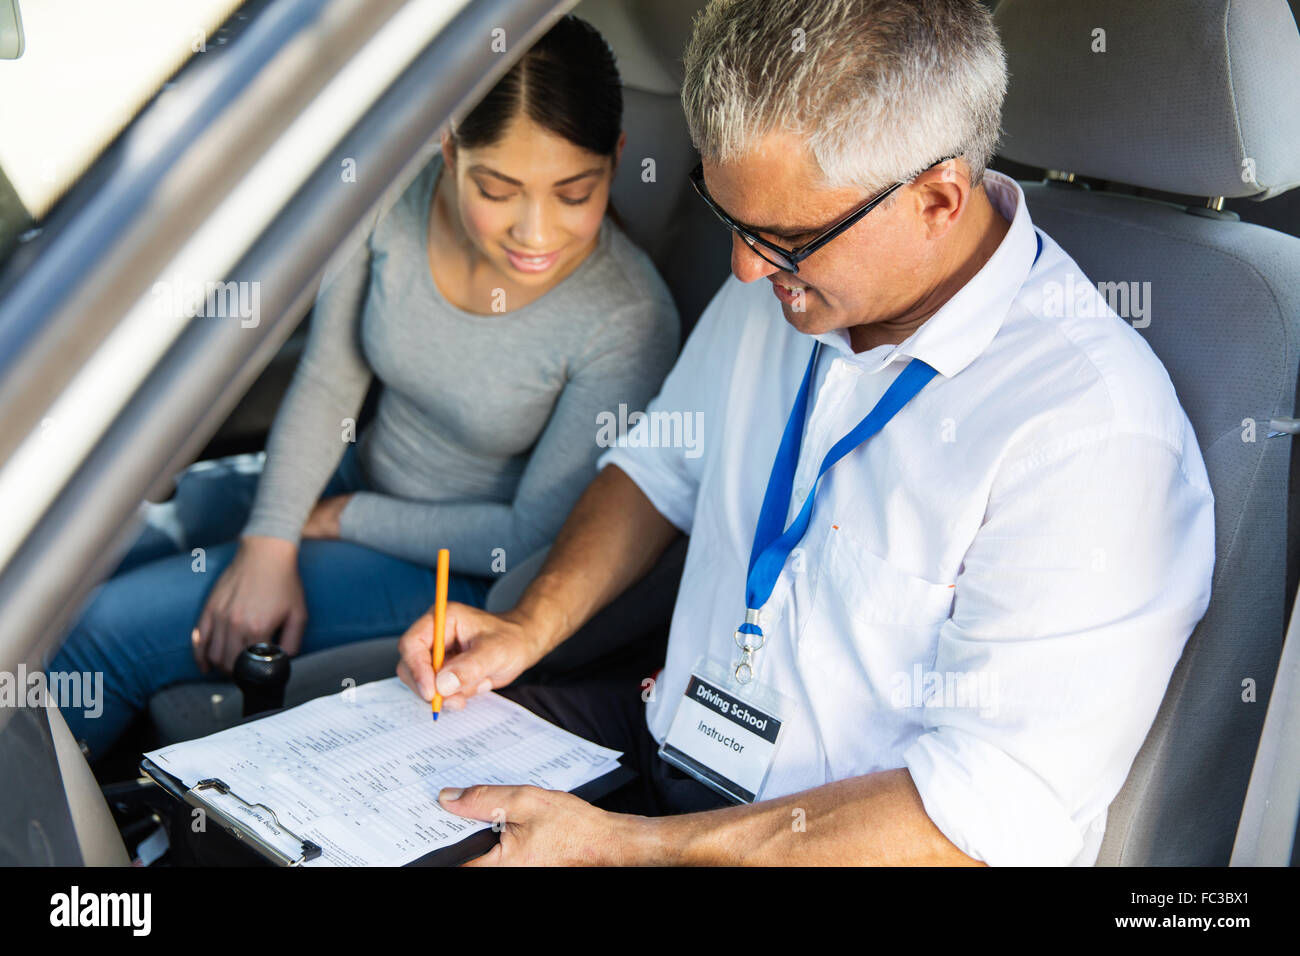 portrait of senior driving instructor and student driver during lesson - Stock Image